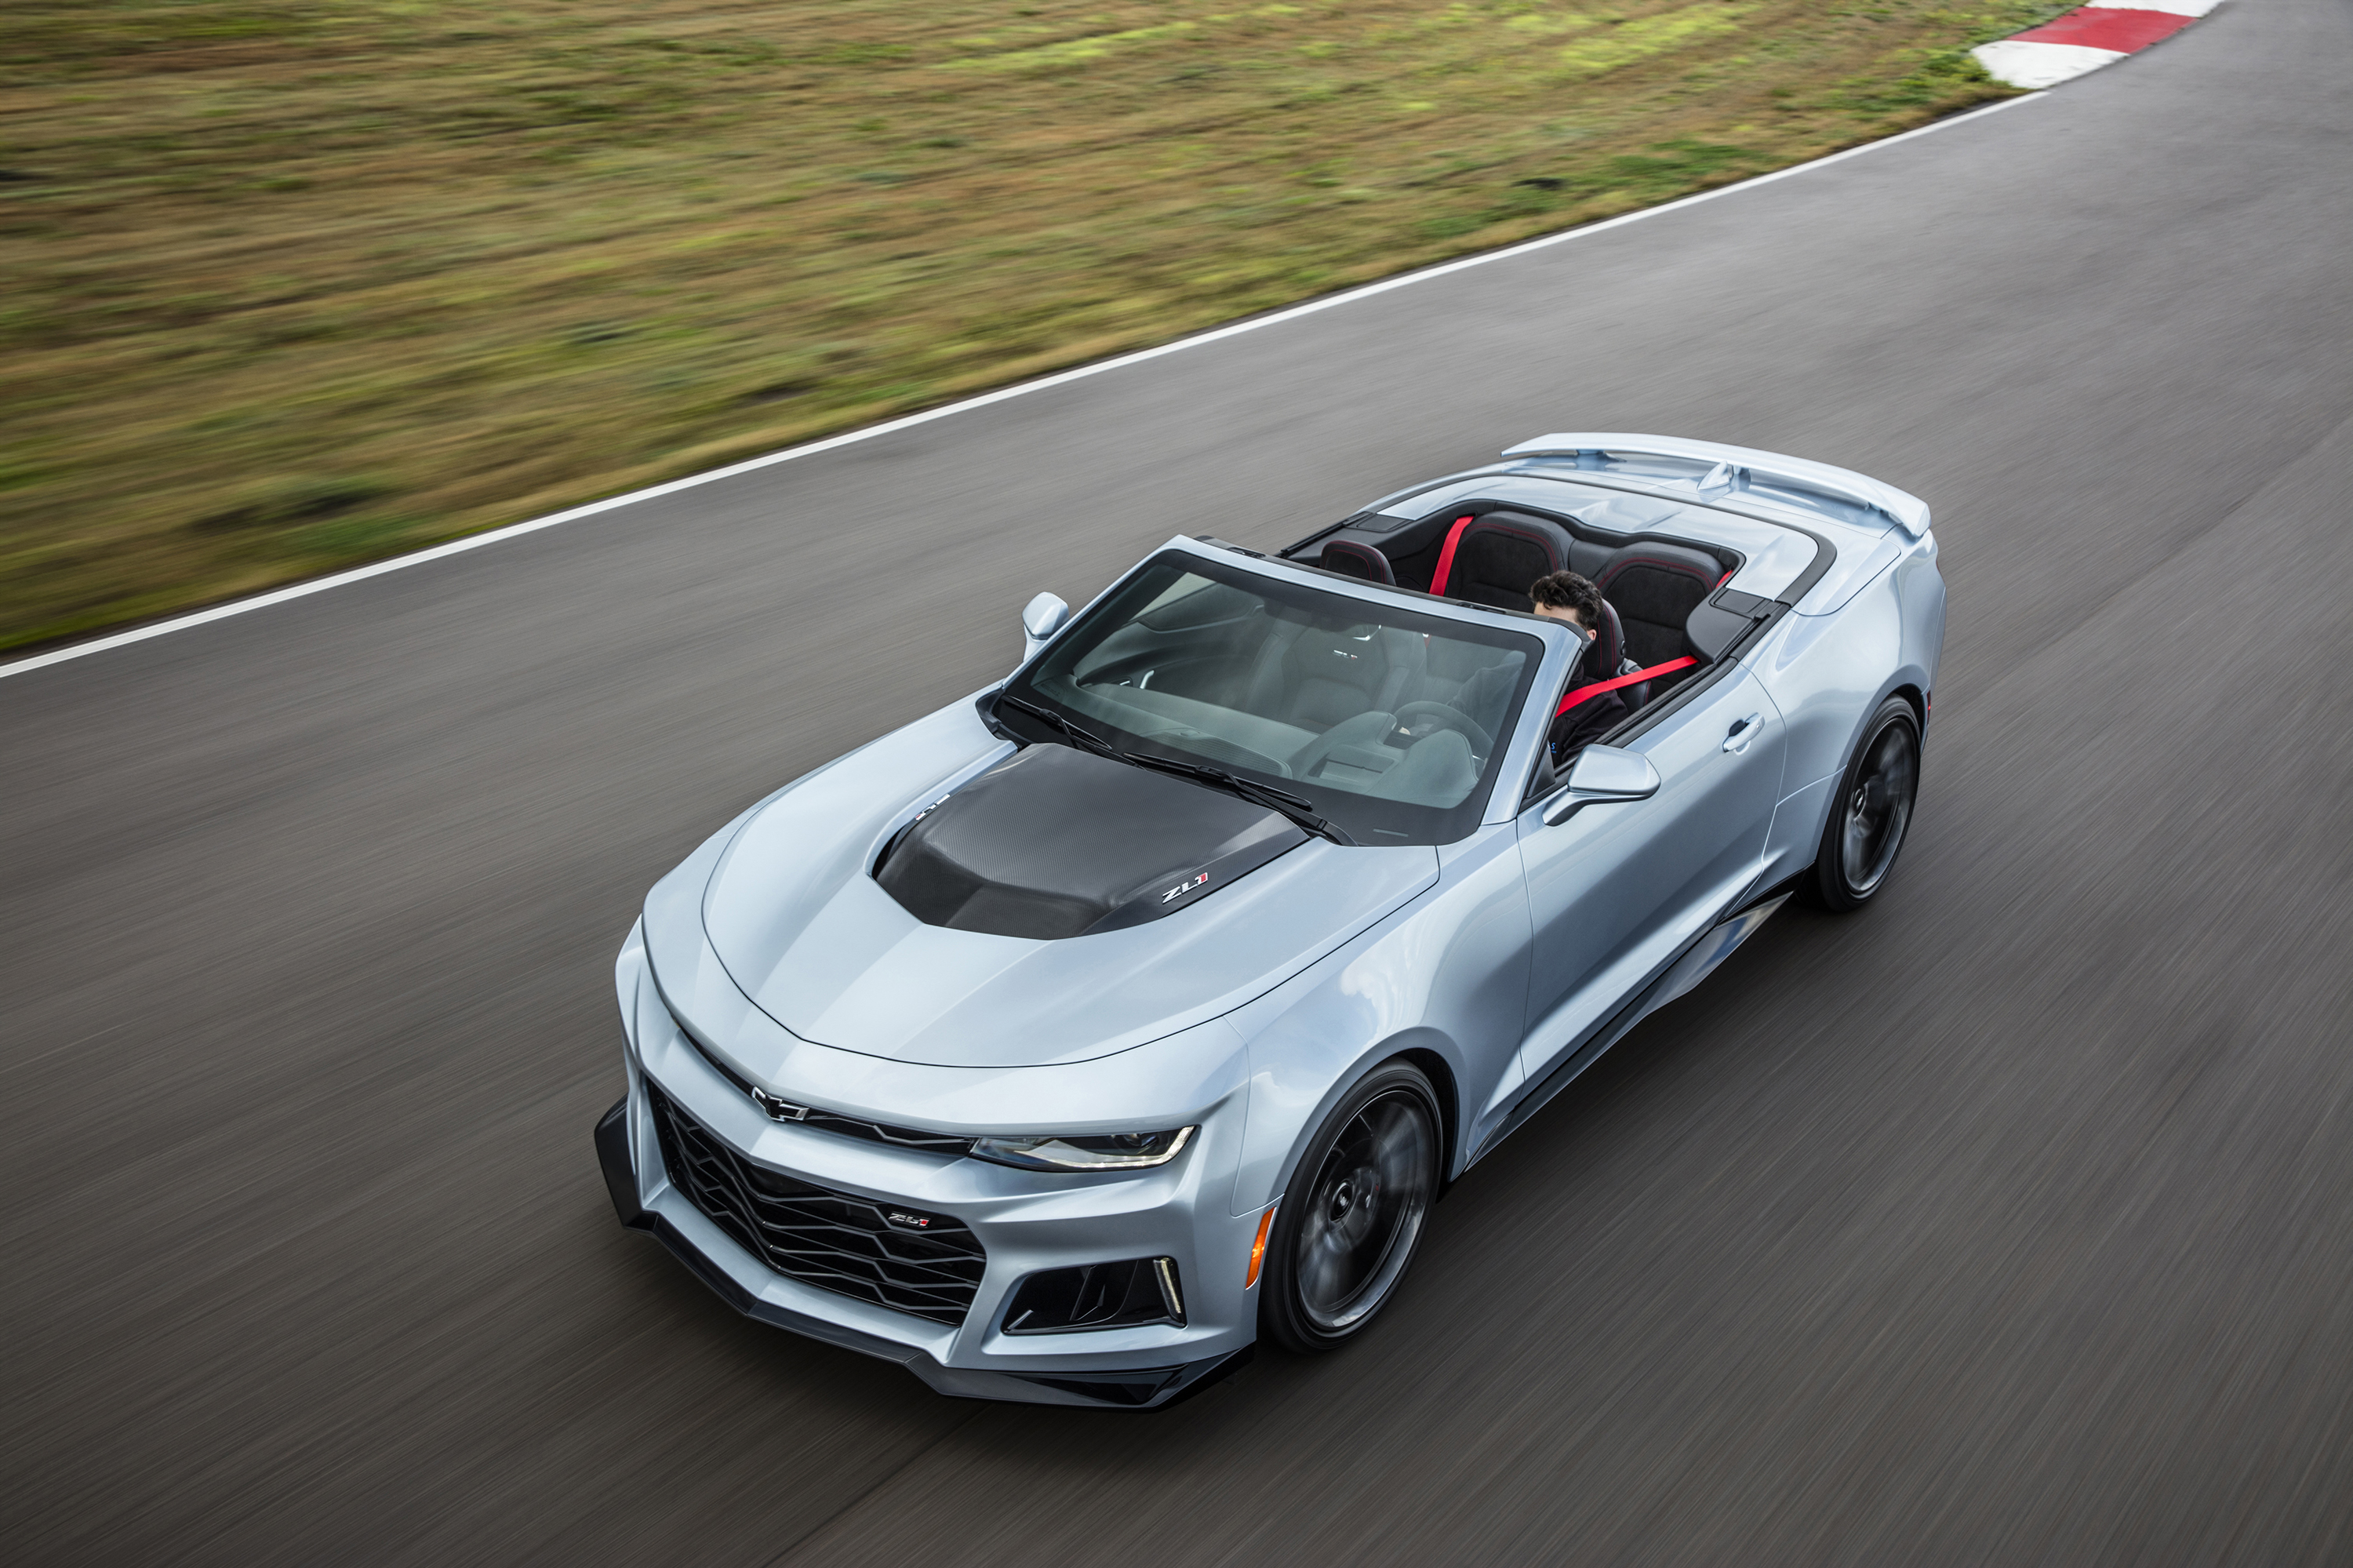 The 2017 Camaro ZL1 is poised to challenge the most advanced performance cars in the world in any measure – with unprecedented levels of technology, refinement, track capability and straight-line acceleration. From the fully automatic soft top that seamlessly disappears beneath the hard tonneau cover, to modular underbody bracing to allow the same sharp, nimble handling as the coupe, the Camaro ZL1 Convertible is a high-tech masterpiece. The fully automatic top can be raised or lowered with a single button while driving up to 30 mph, or lowered remotely with the keyfob.